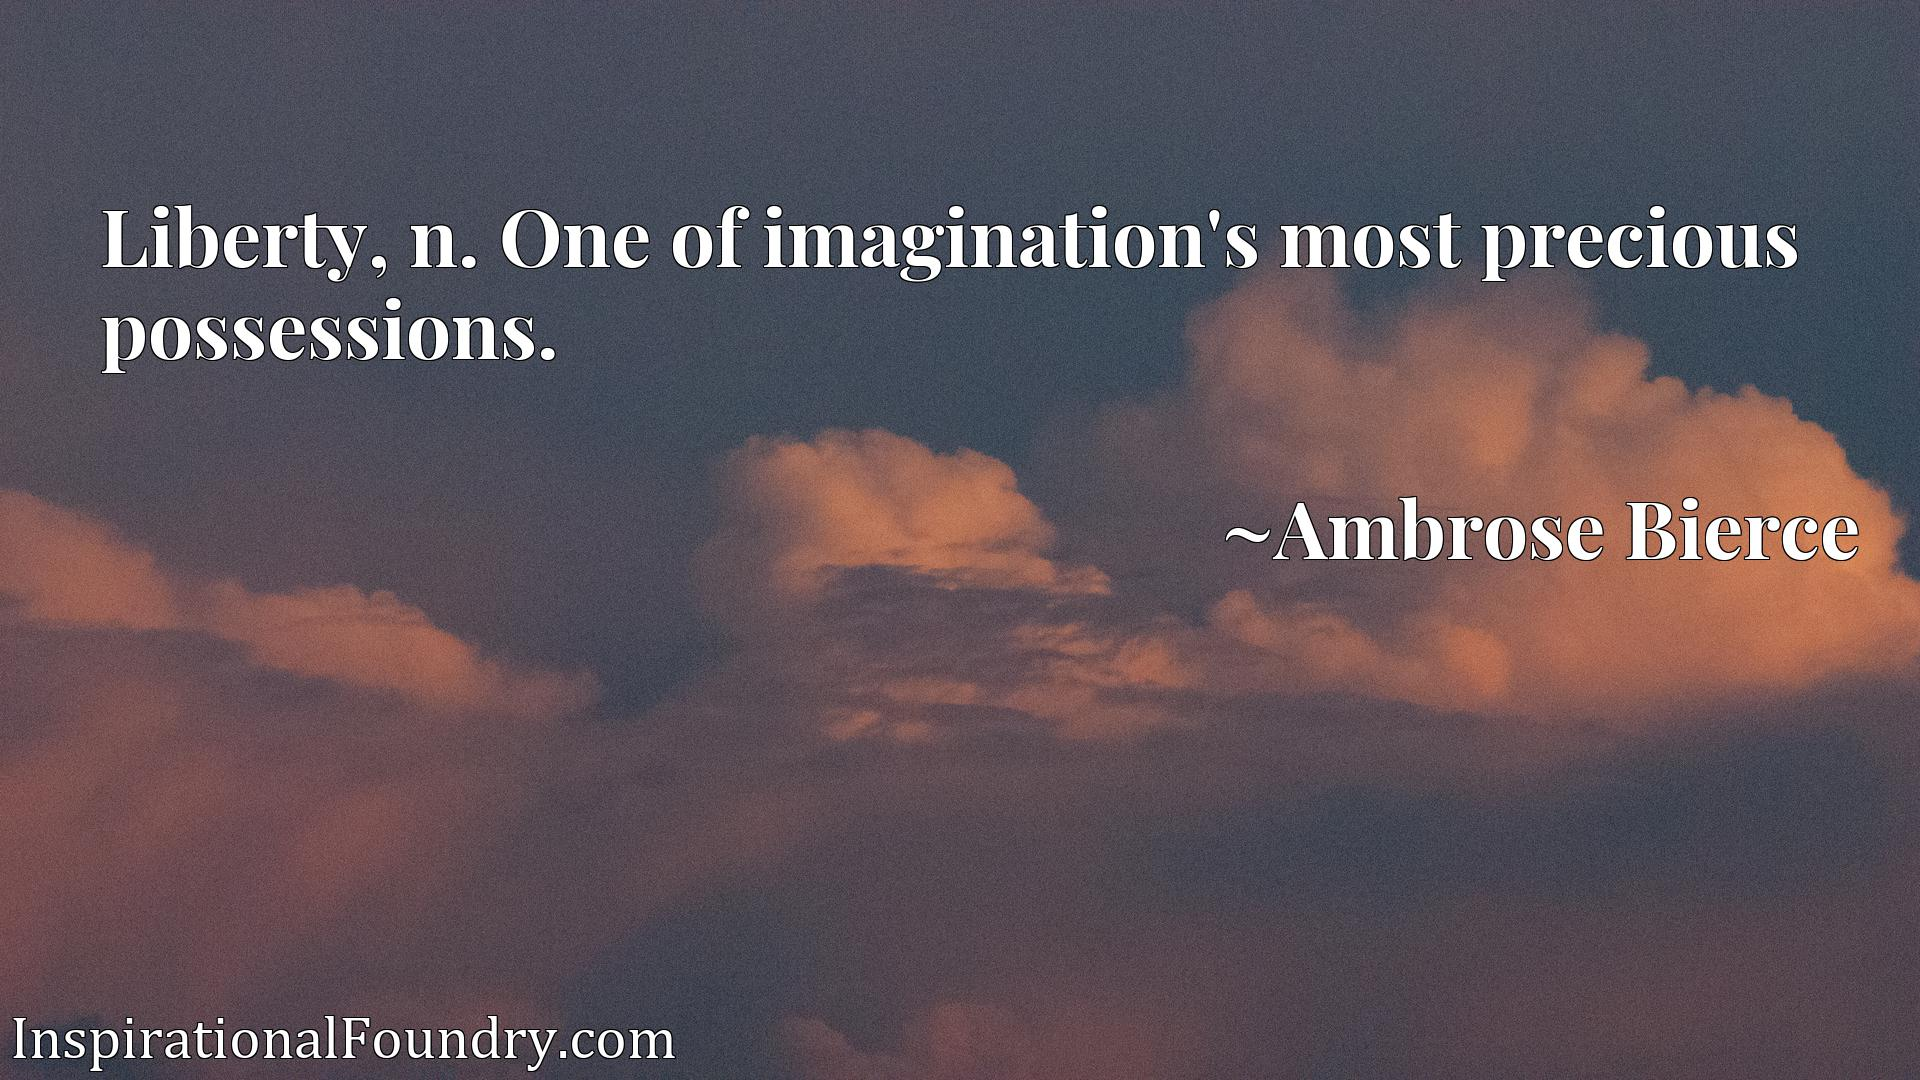 Liberty, n. One of imagination's most precious possessions.